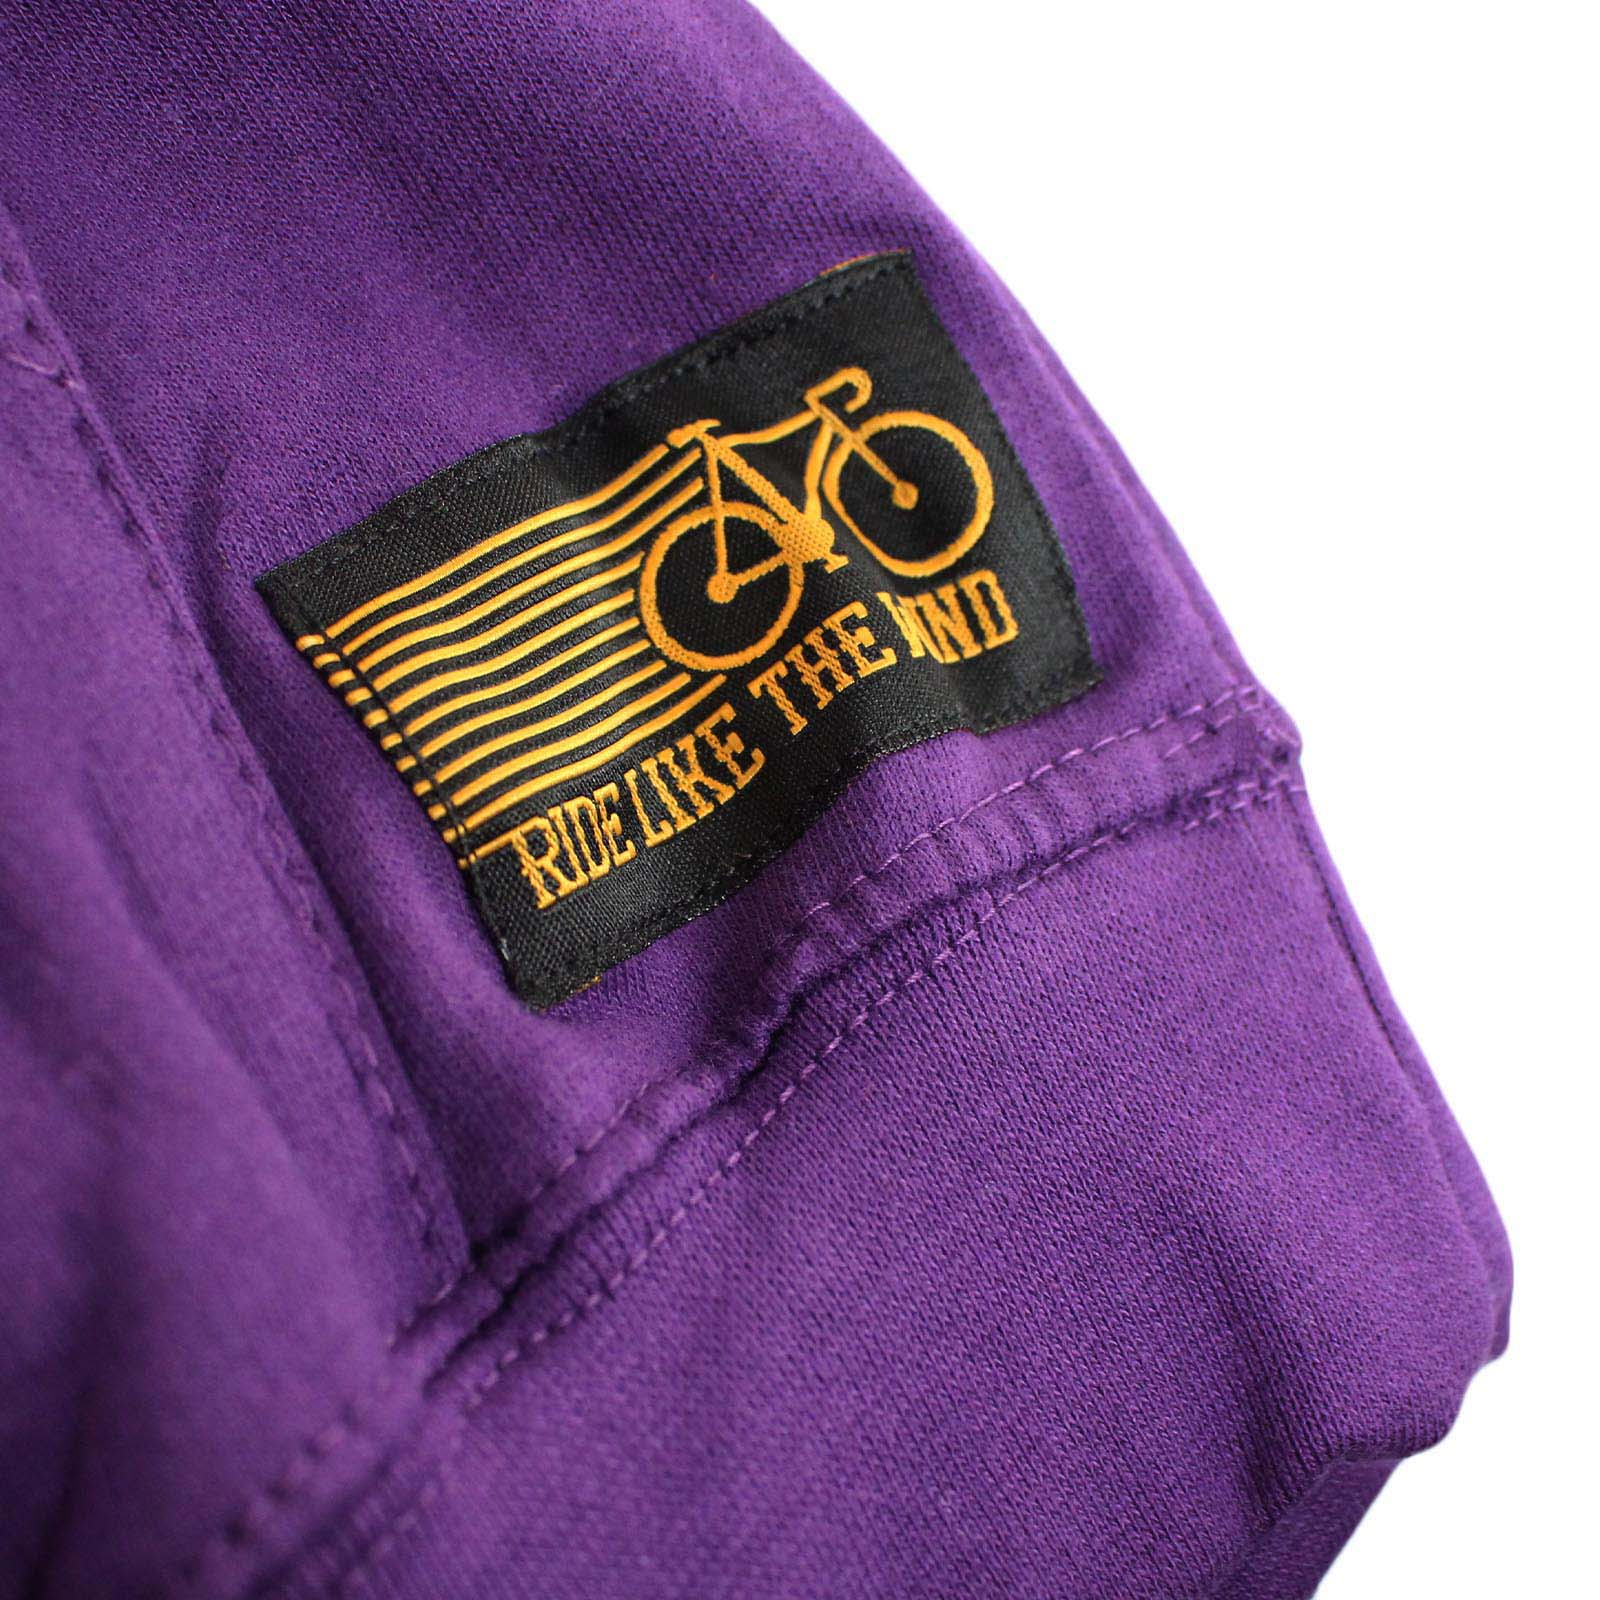 Cycling-Hoodie-A-Good-Ride-Fixes-Everything-hoody-funny-Birthday-HOODY thumbnail 21